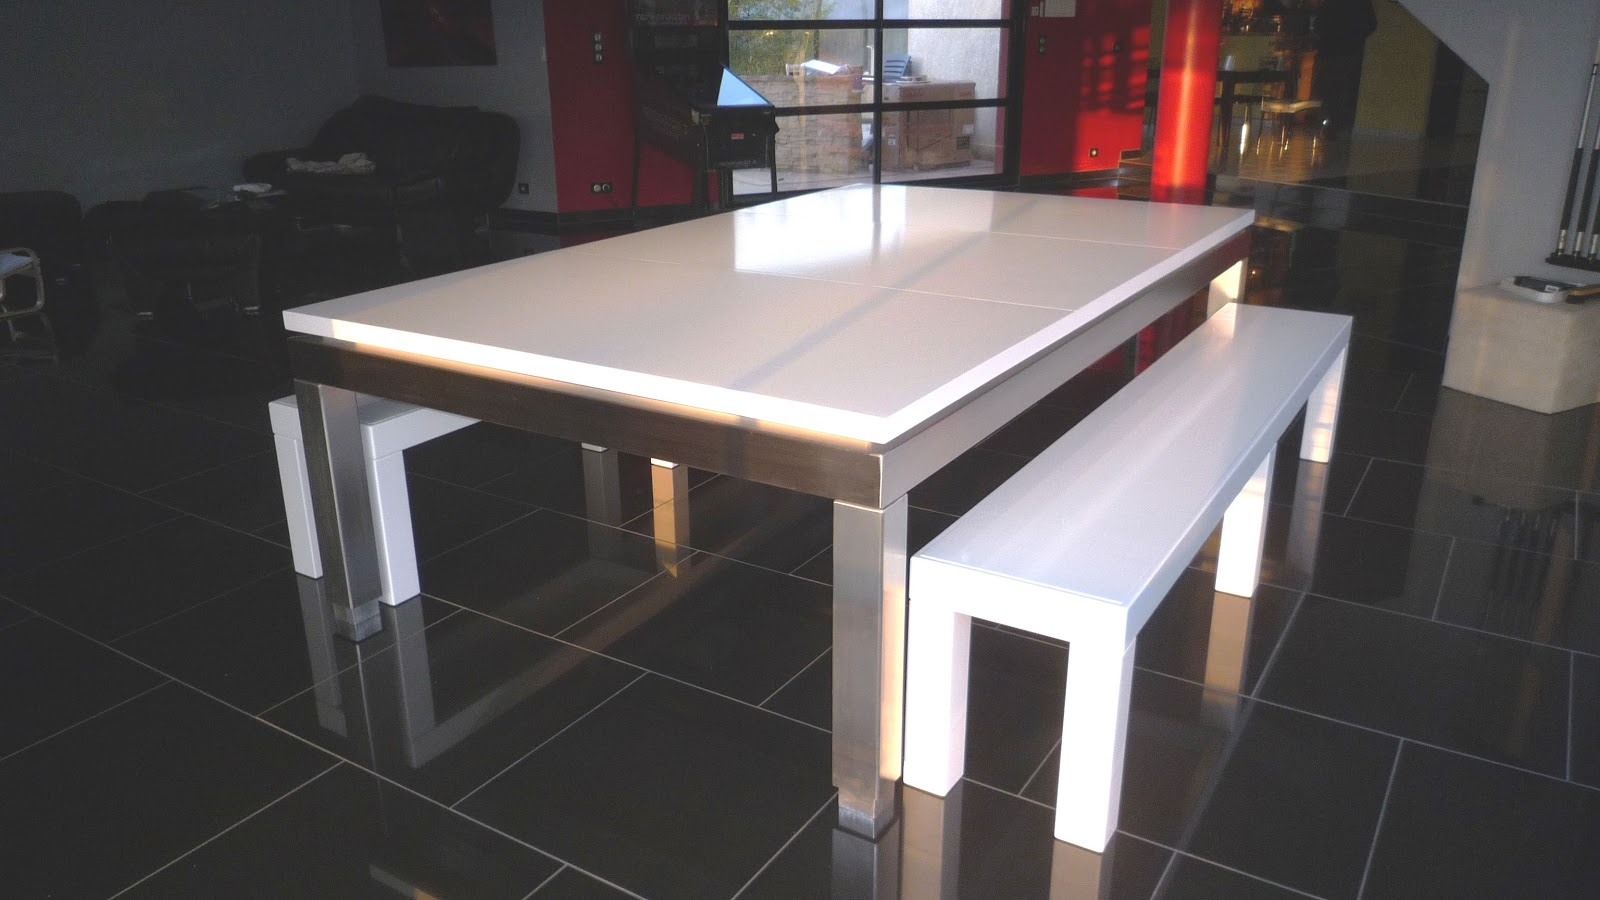 Fabricant de billards id es design et d coration dans l 39 univers du billa - Table billard design ...